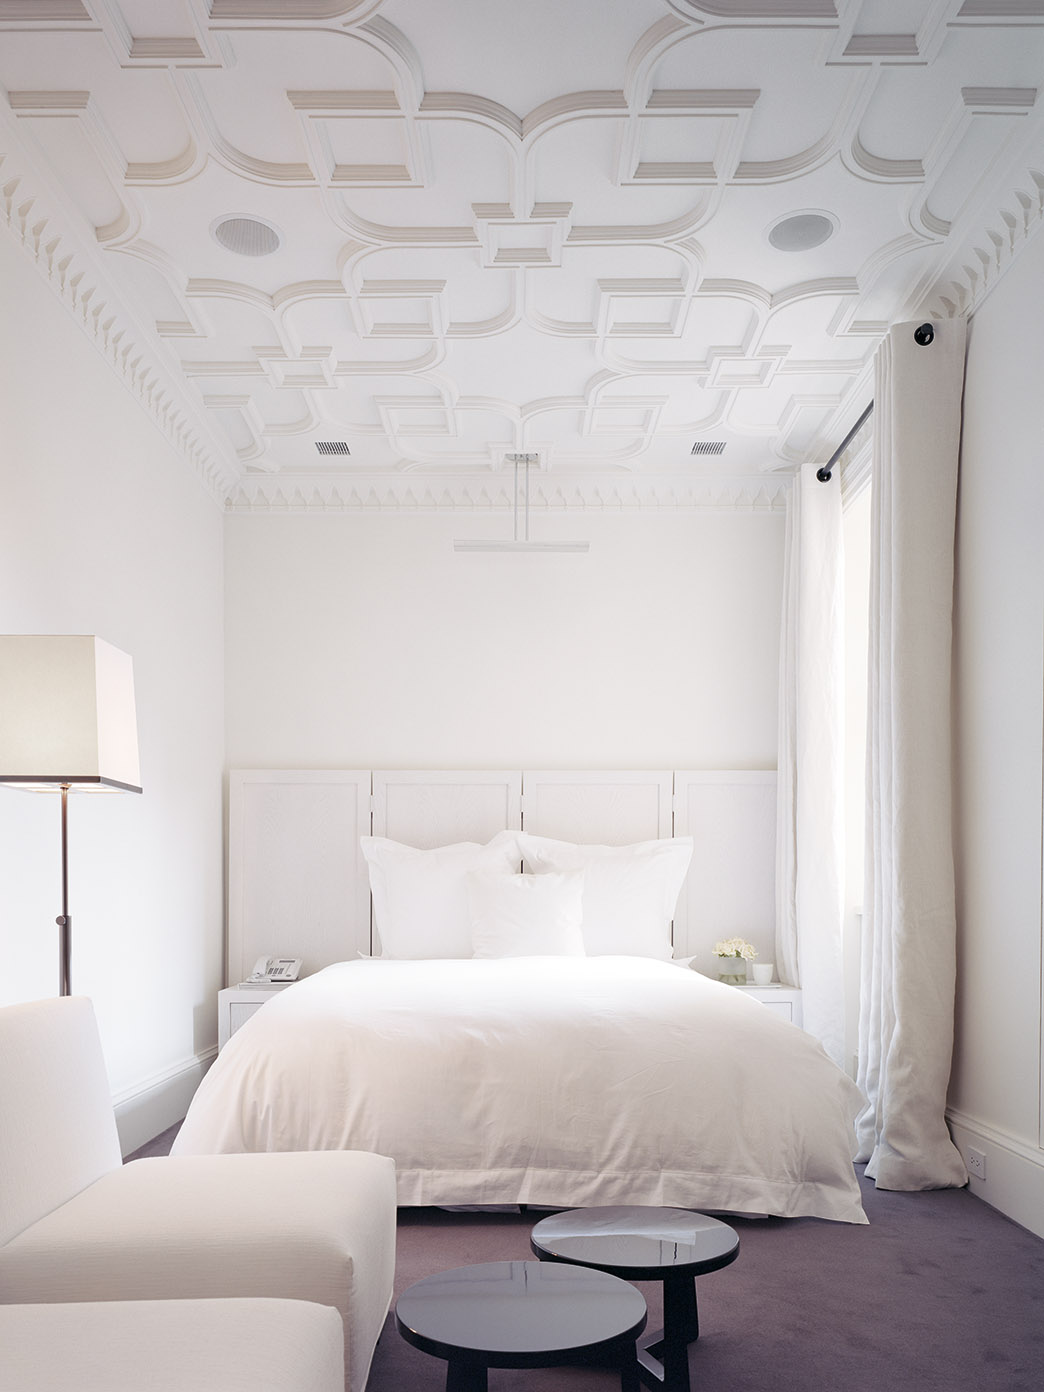 Fifth Avenue Apartment NYC with KLAAR lighting by Maretti